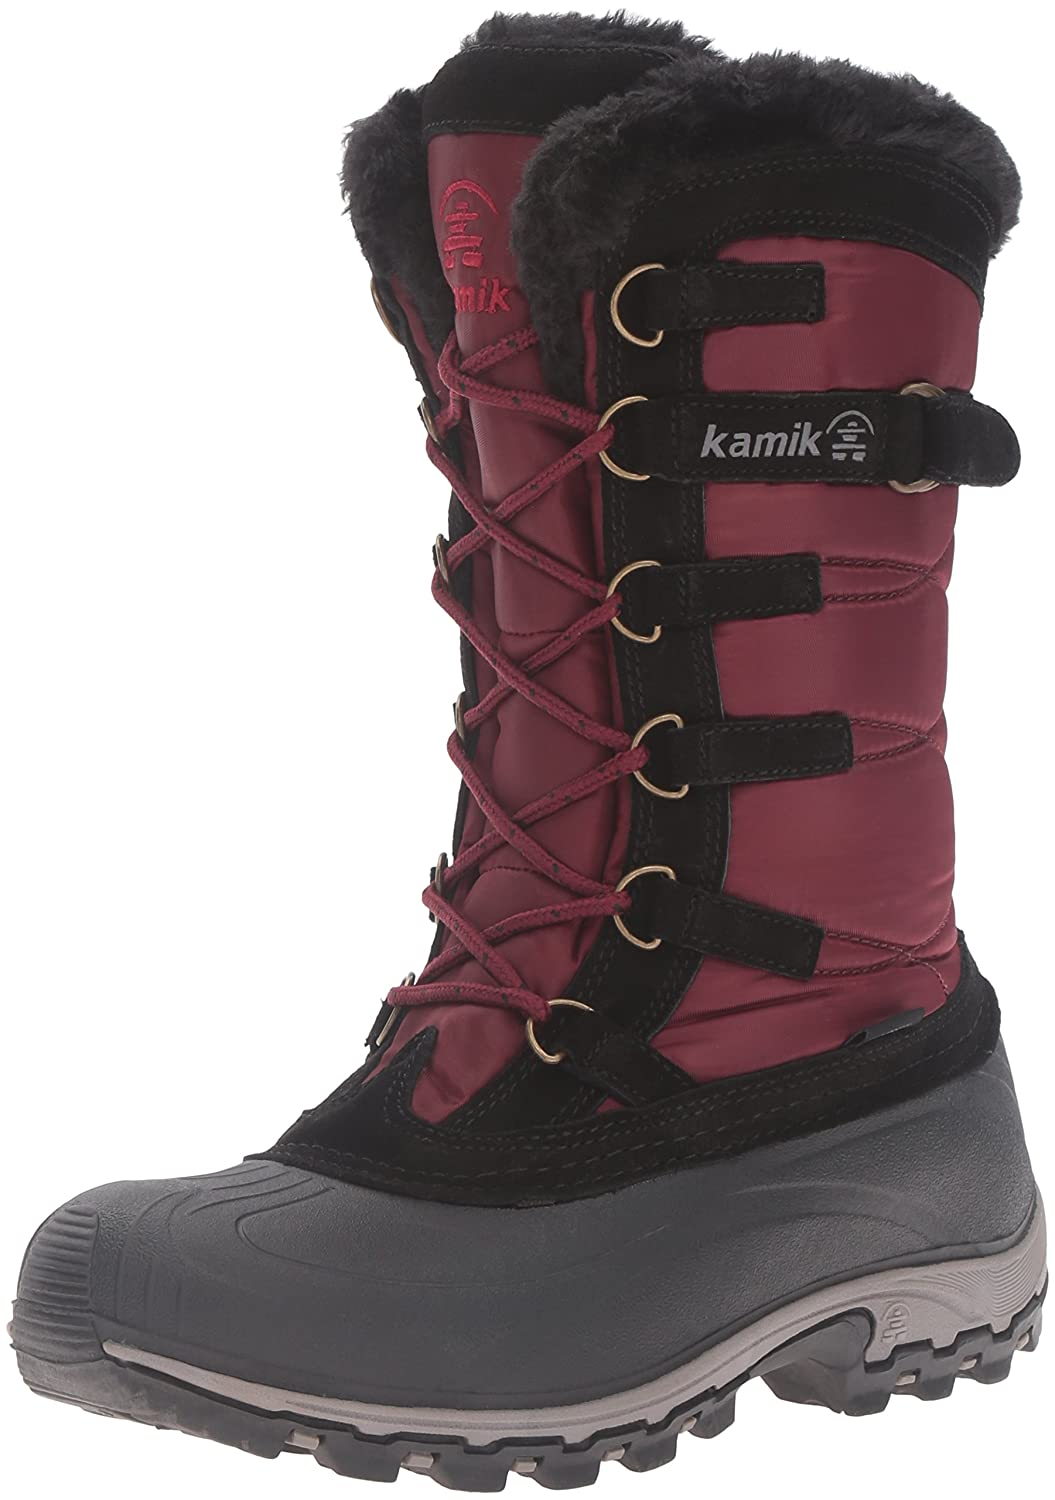 Kamik Women's Snowvalley Boot B0198WG1QC 7 B(M) US|Burgundy